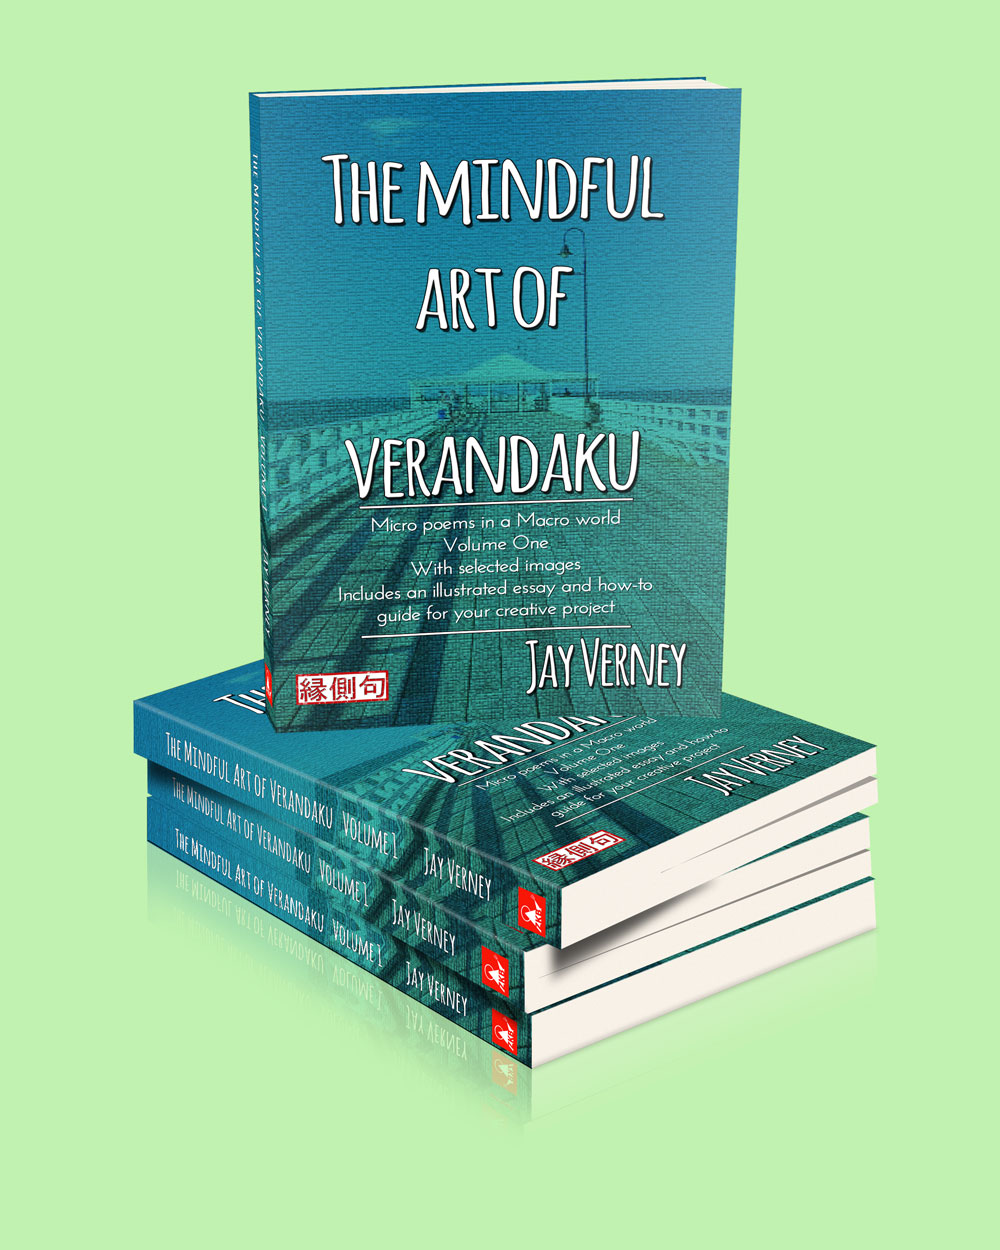 Book cover image for The Mindful Art of Verandaku Volume 1 by Jay Verney